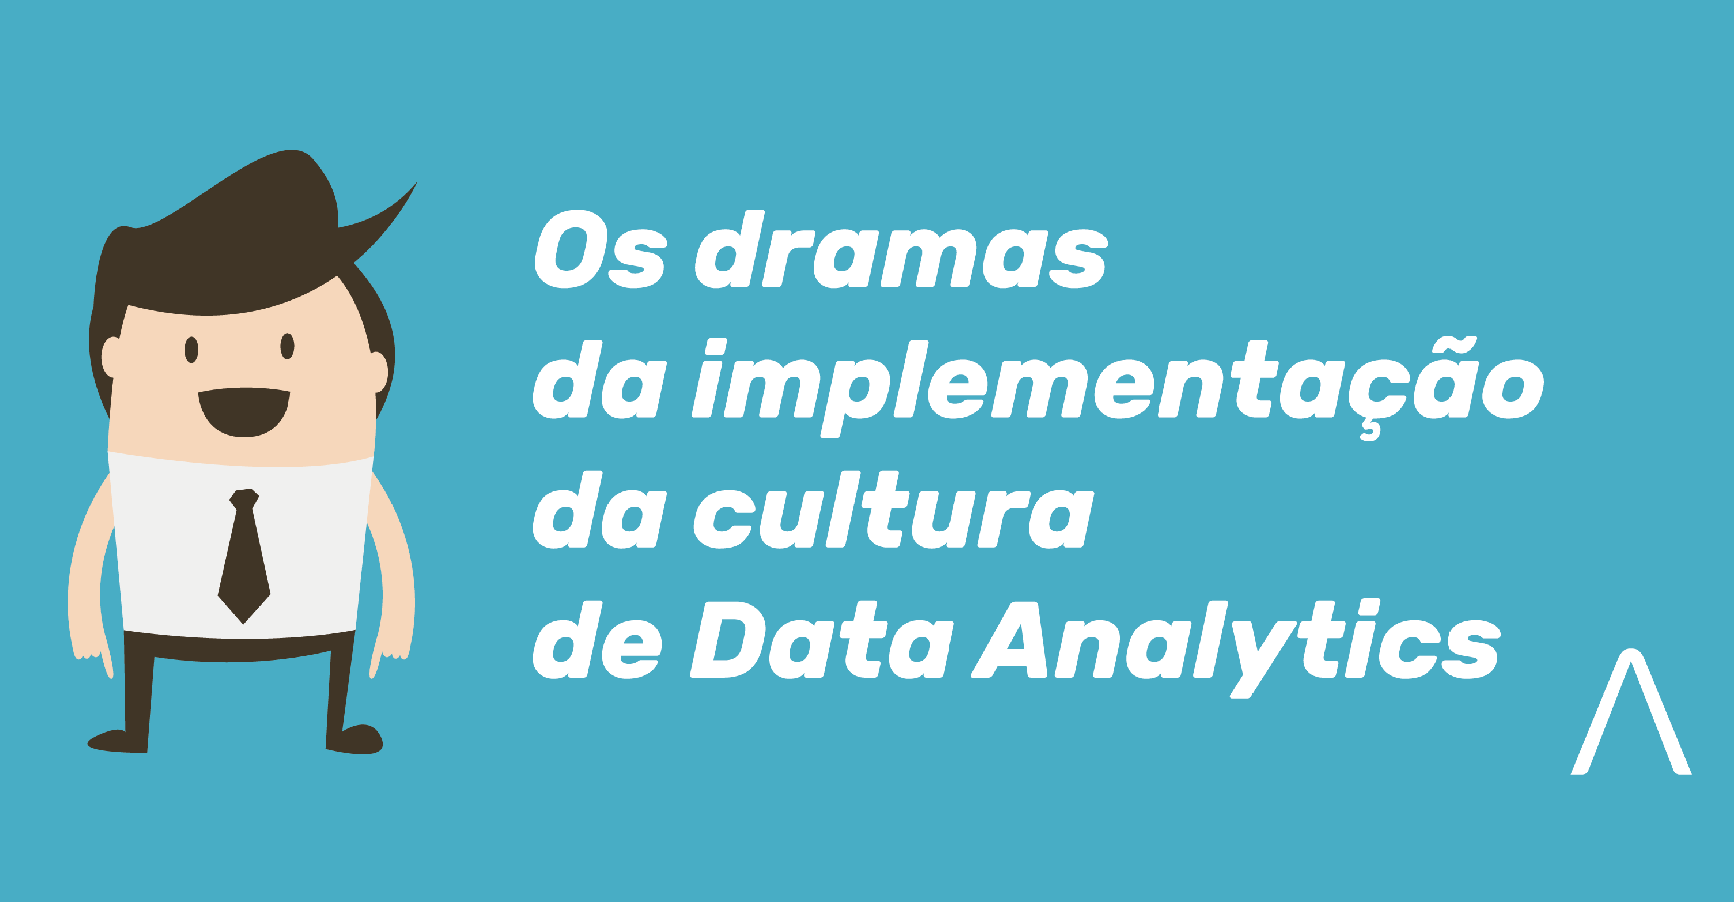 Dramas comuns na implementação da cultura de Data Analytics